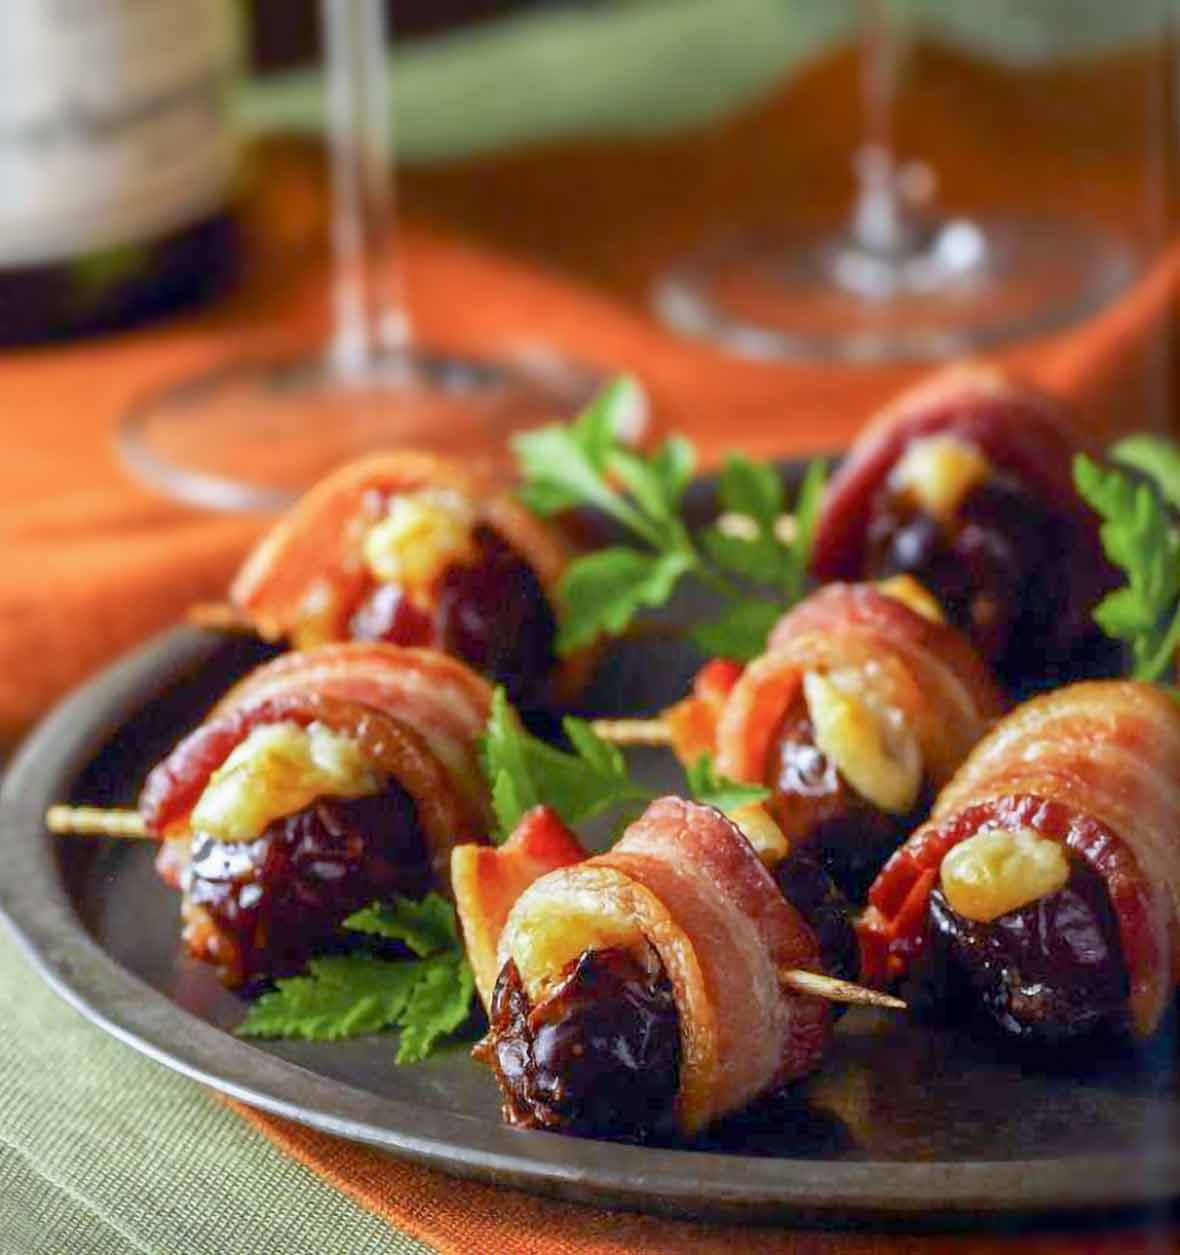 Plate of crispy bacon-wrapped stuffed dates held by toothpicks, parsley garnish